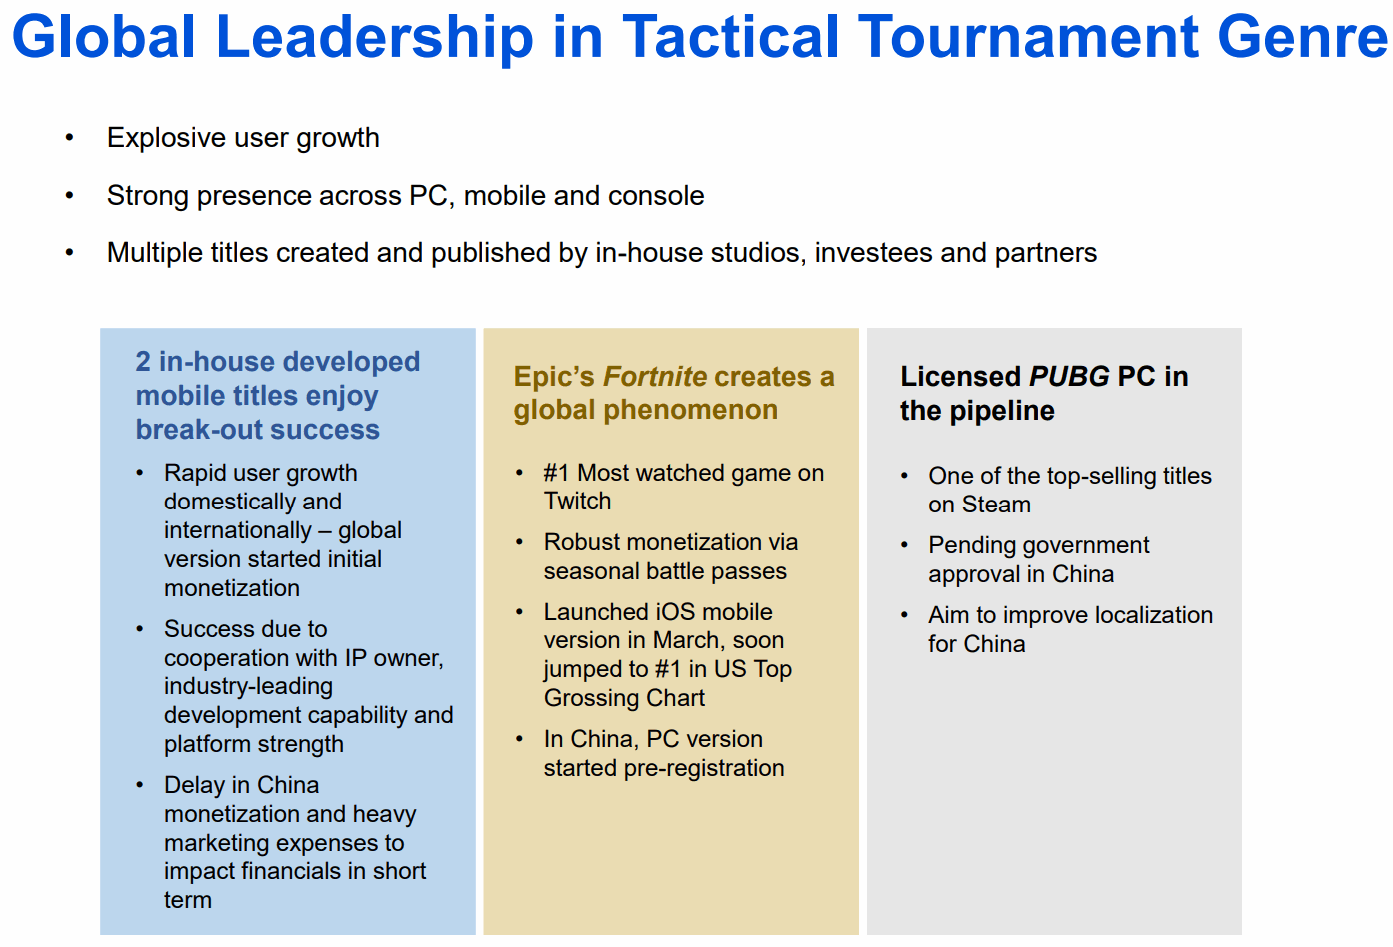 Tencent-2018Q1-Global-Leadership